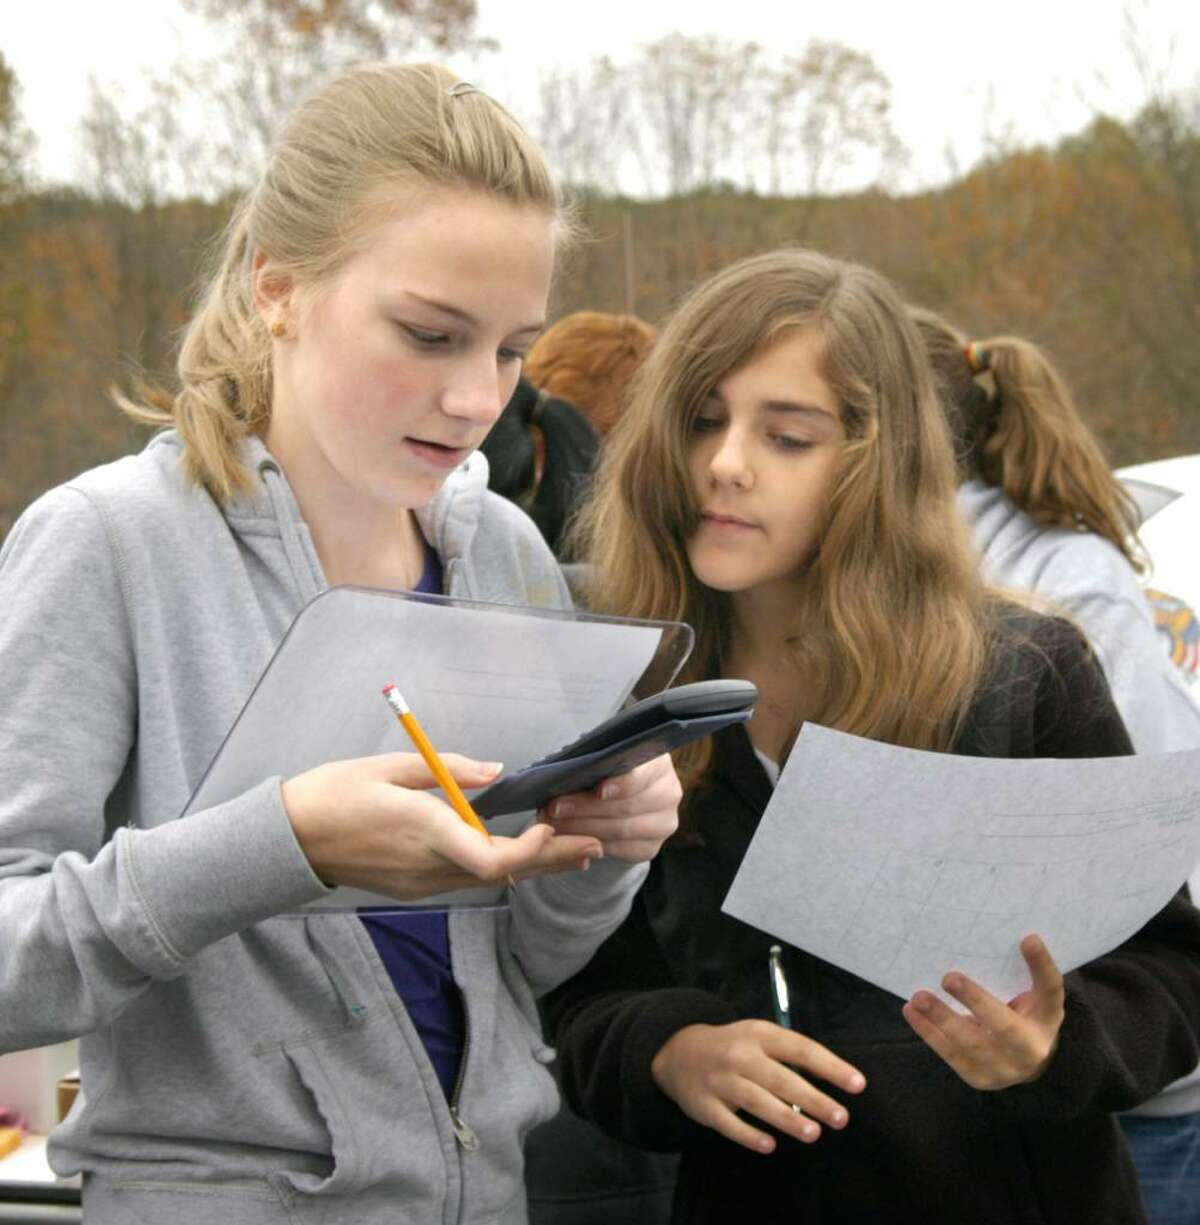 Lauren Lempereur, left and Paige Piera, both 12, calculate an equation of distance = rate x time of a moving car. The girls are seventh grader students in teacher Alison Salerno's pre-algebra class at the Bethel Middle School. Photo taken Oct. 13, 2009